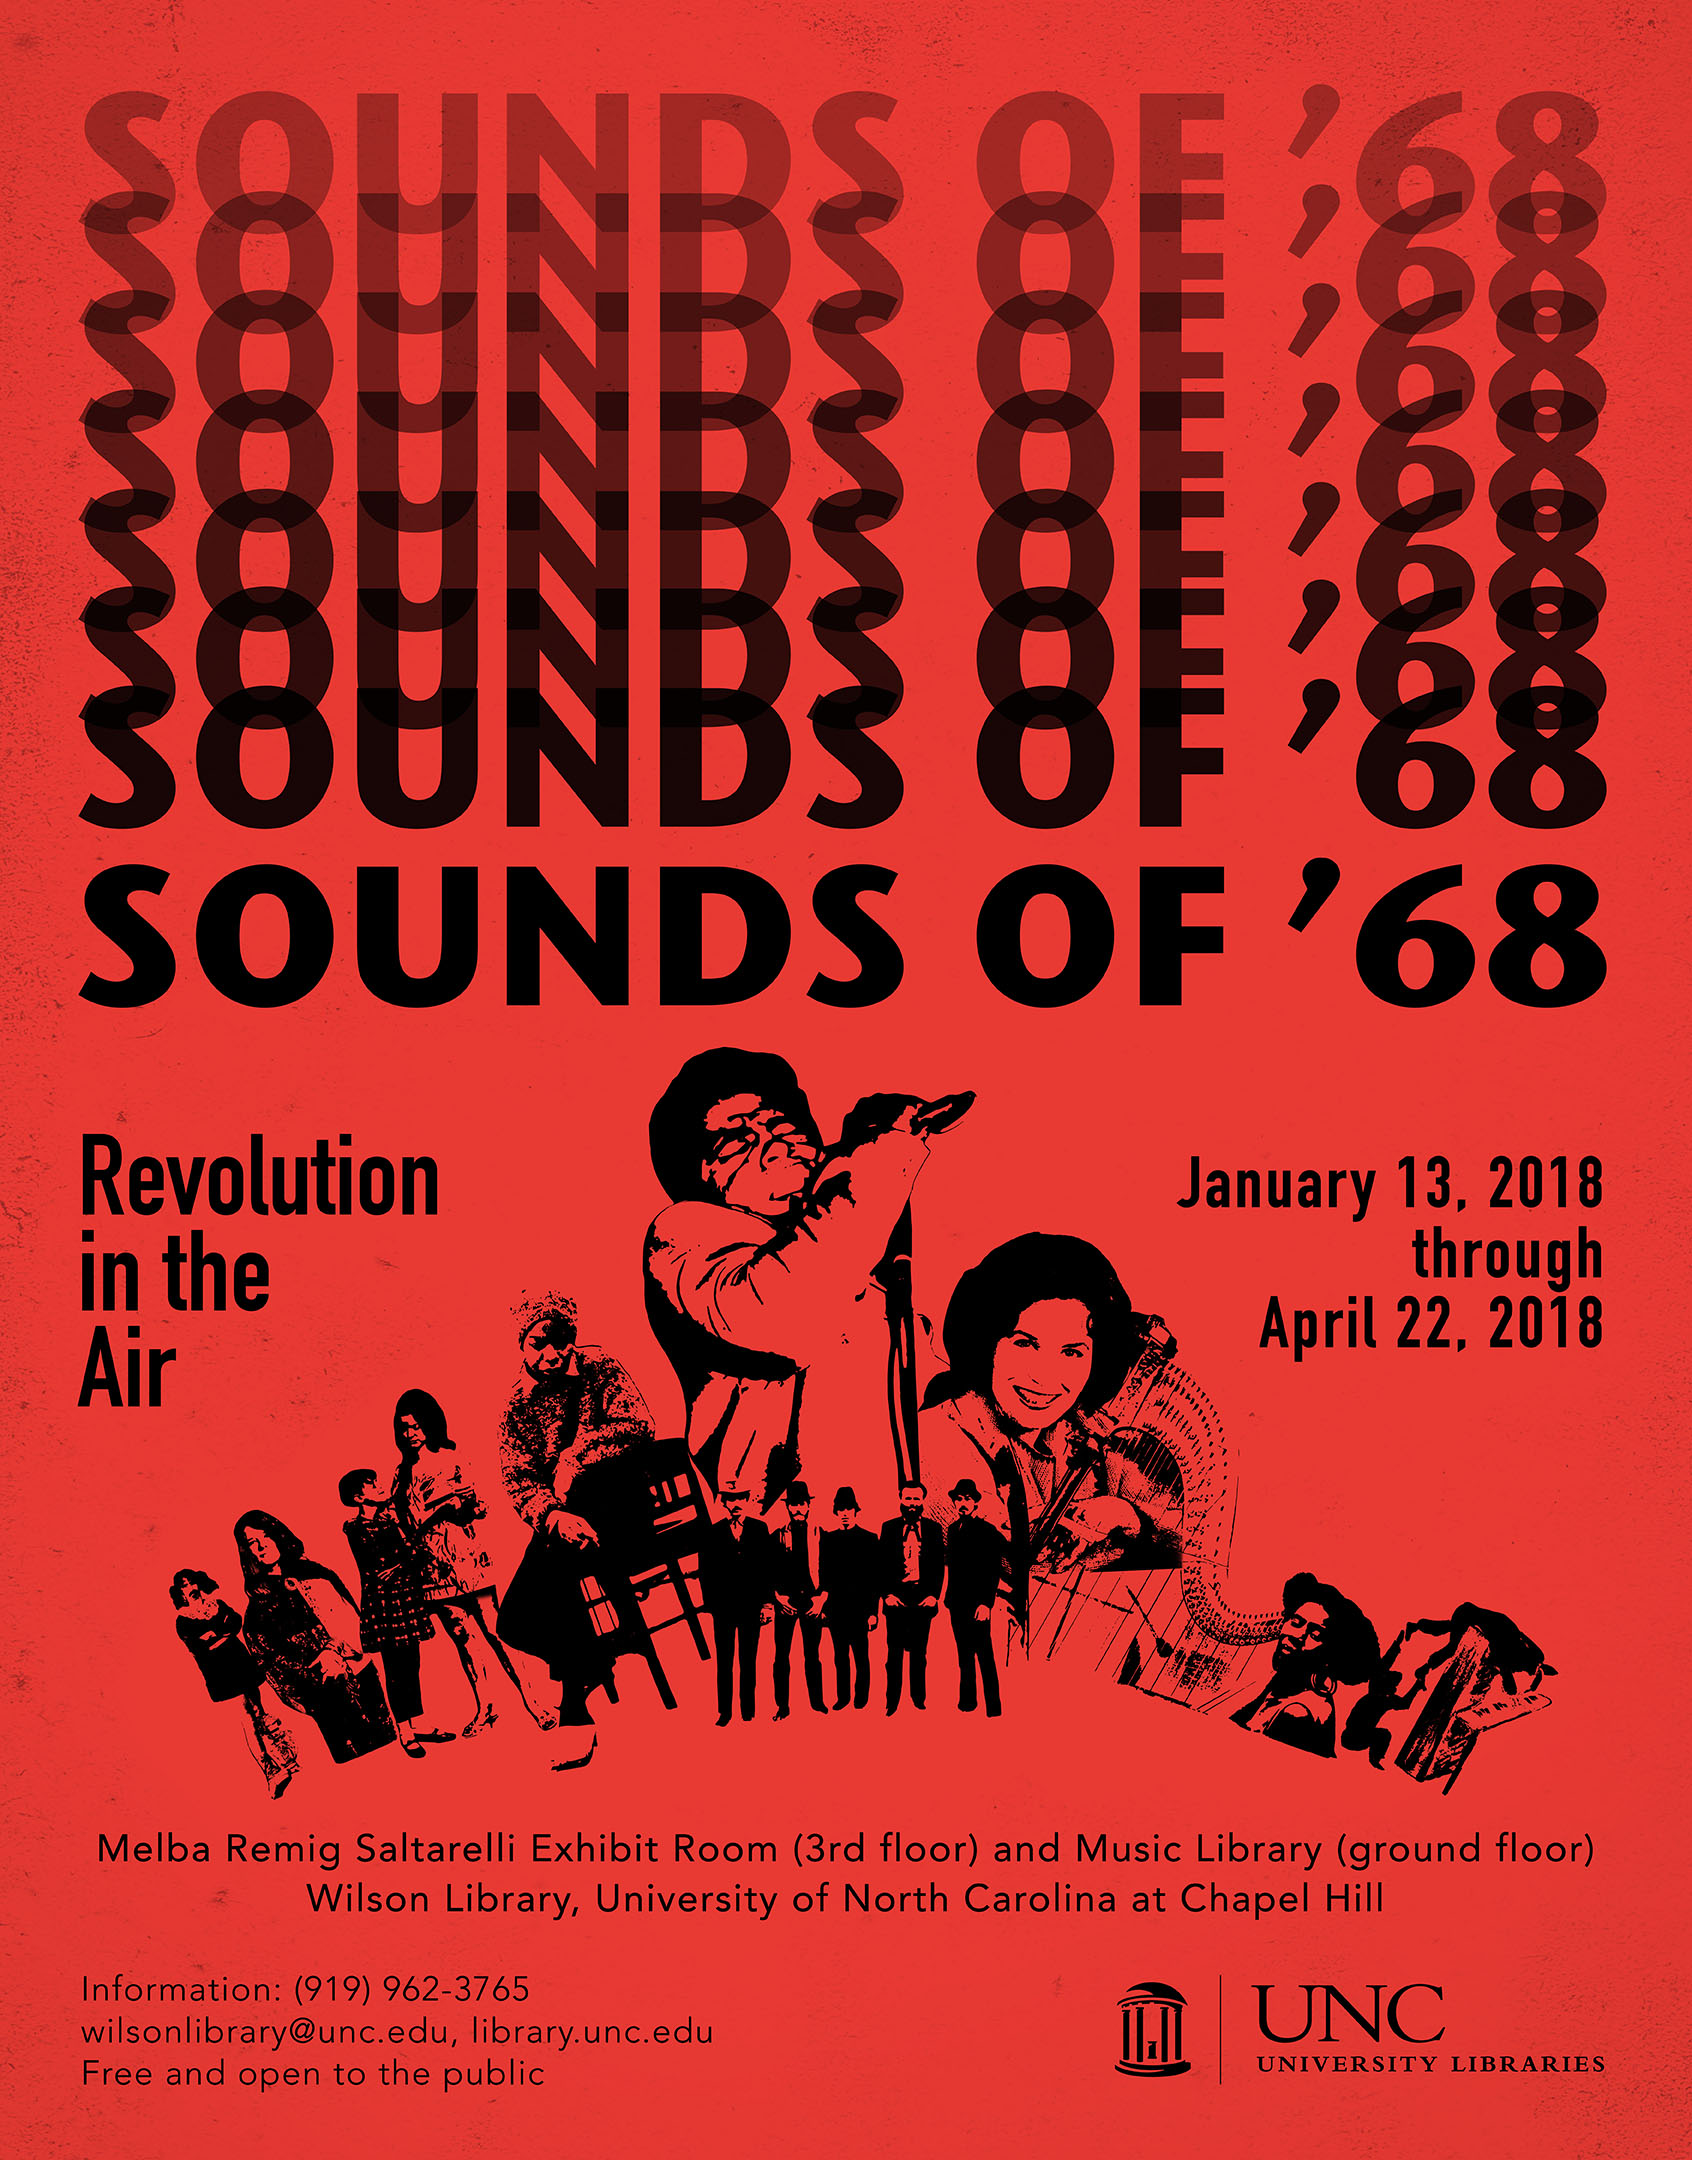 This is an image of the poster that advertised the Sounds of '68: Revolution in the Air exhibition. A montage of portraits in silhouette of artists included in the exhibition is at the center of the poster. The artists featured are Frank Zappa, Janice Joplin, Jeanie C Riley, Nina Simone, James Brown, The Band, Loretta Lynne, and Alice Coltrane.